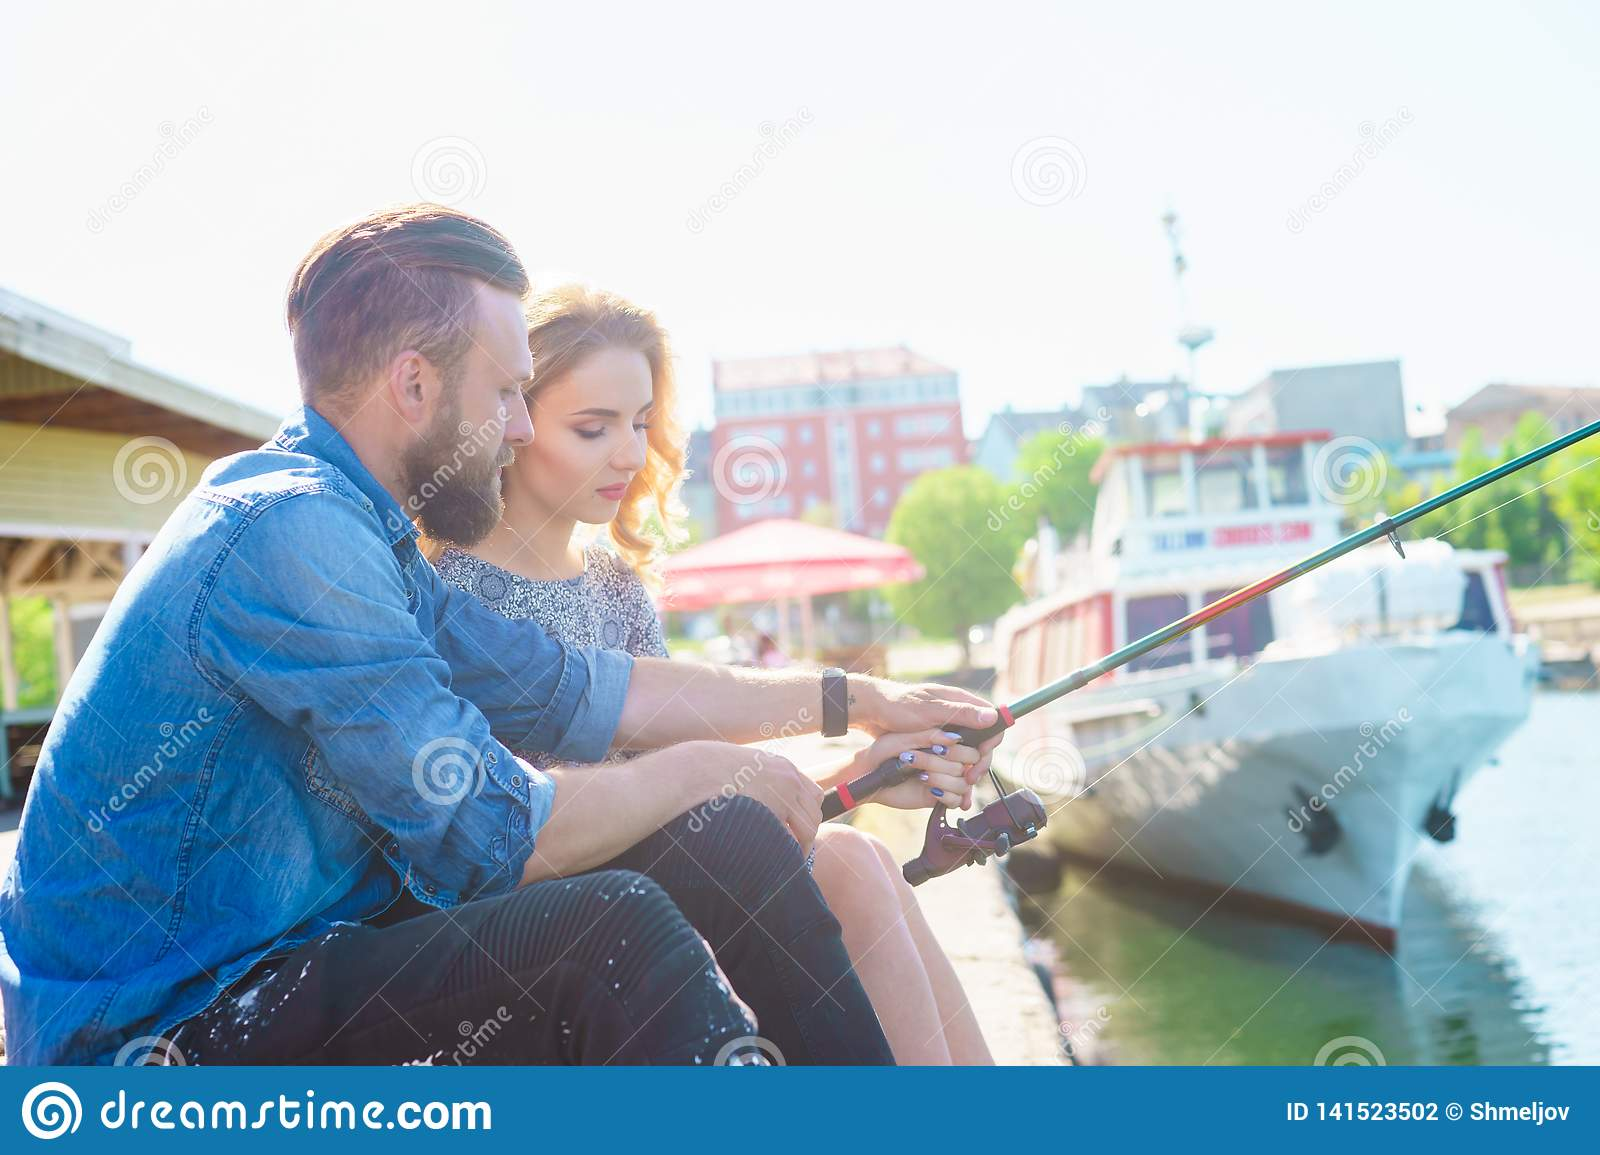 Man teaching his girlfriend to fishing. Date, love and hobby concept.